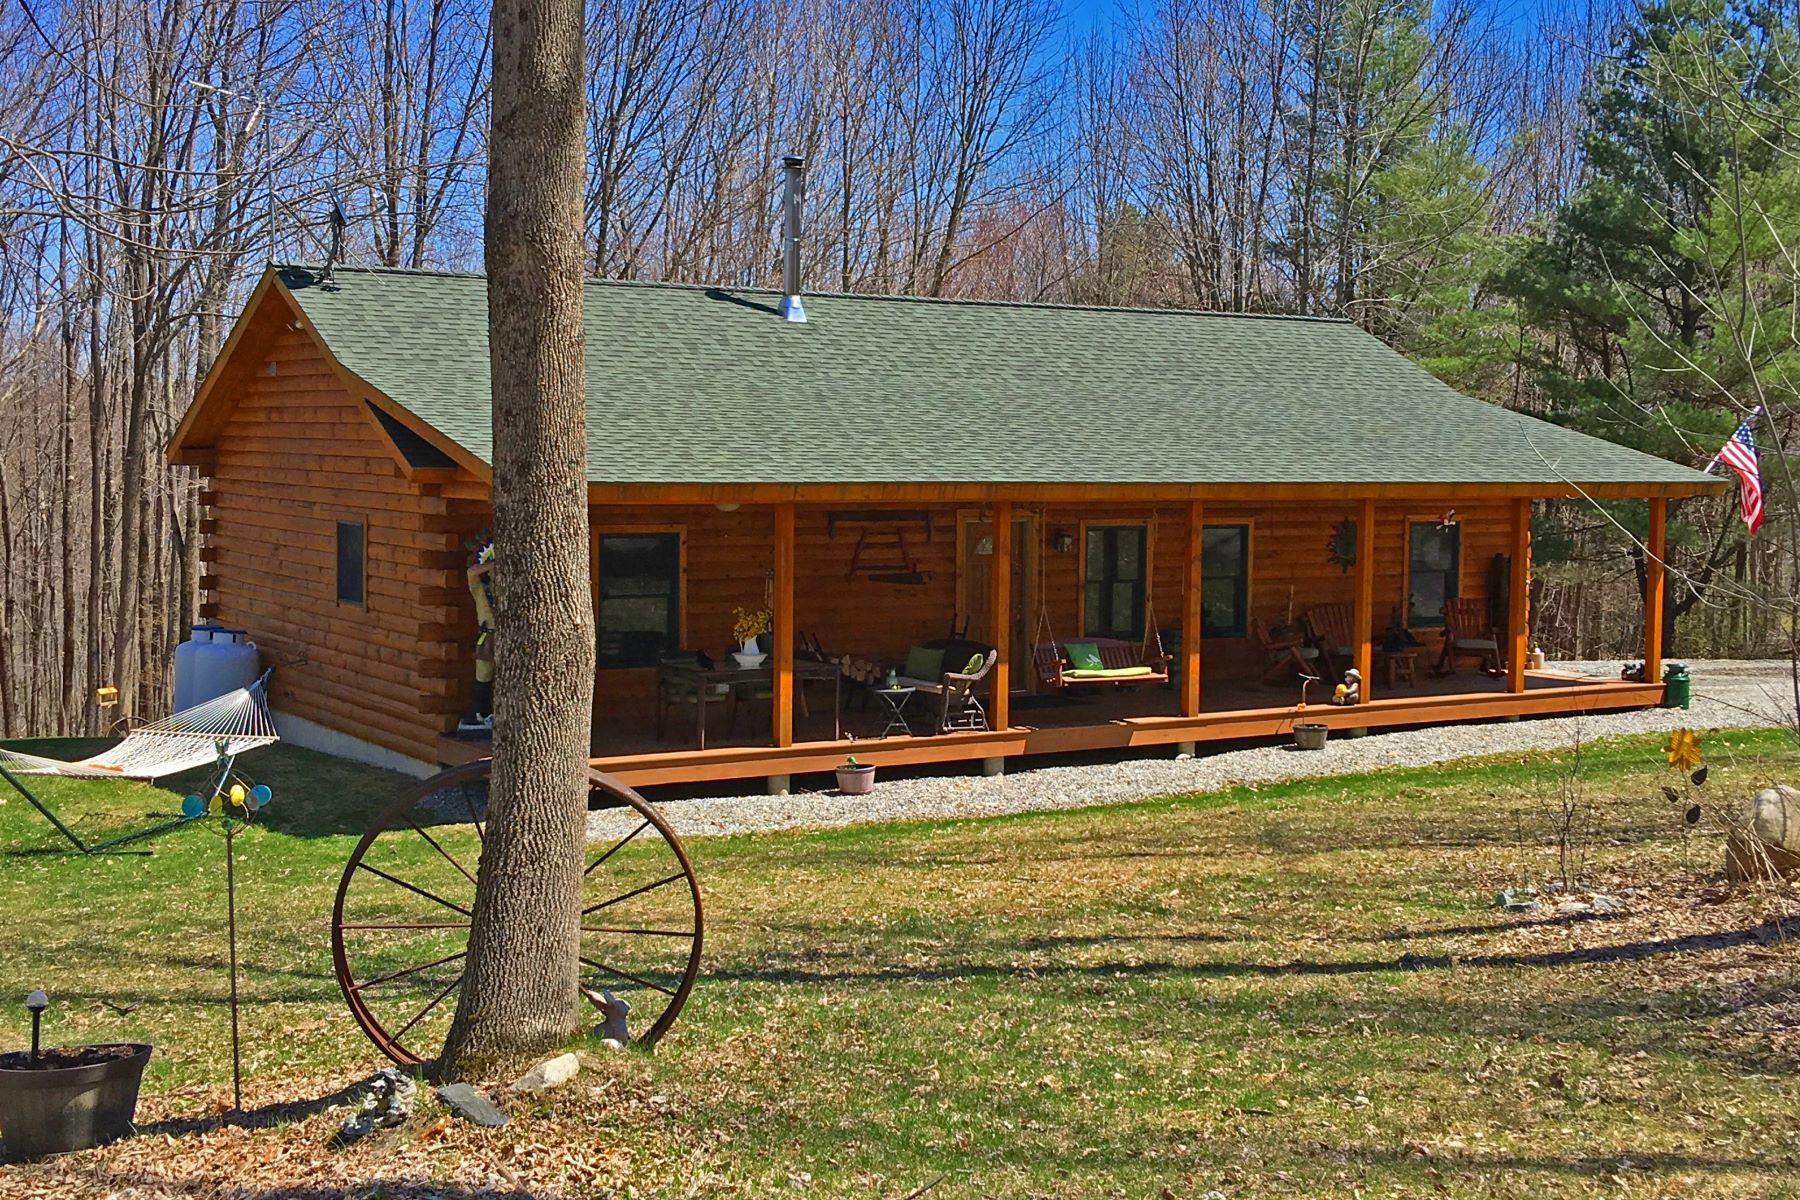 Single Family Home for Sale at Wonderfully Built and Maintained Log Home with Incredible Views 32 Blair Rd Blandford, Massachusetts 01008 United States